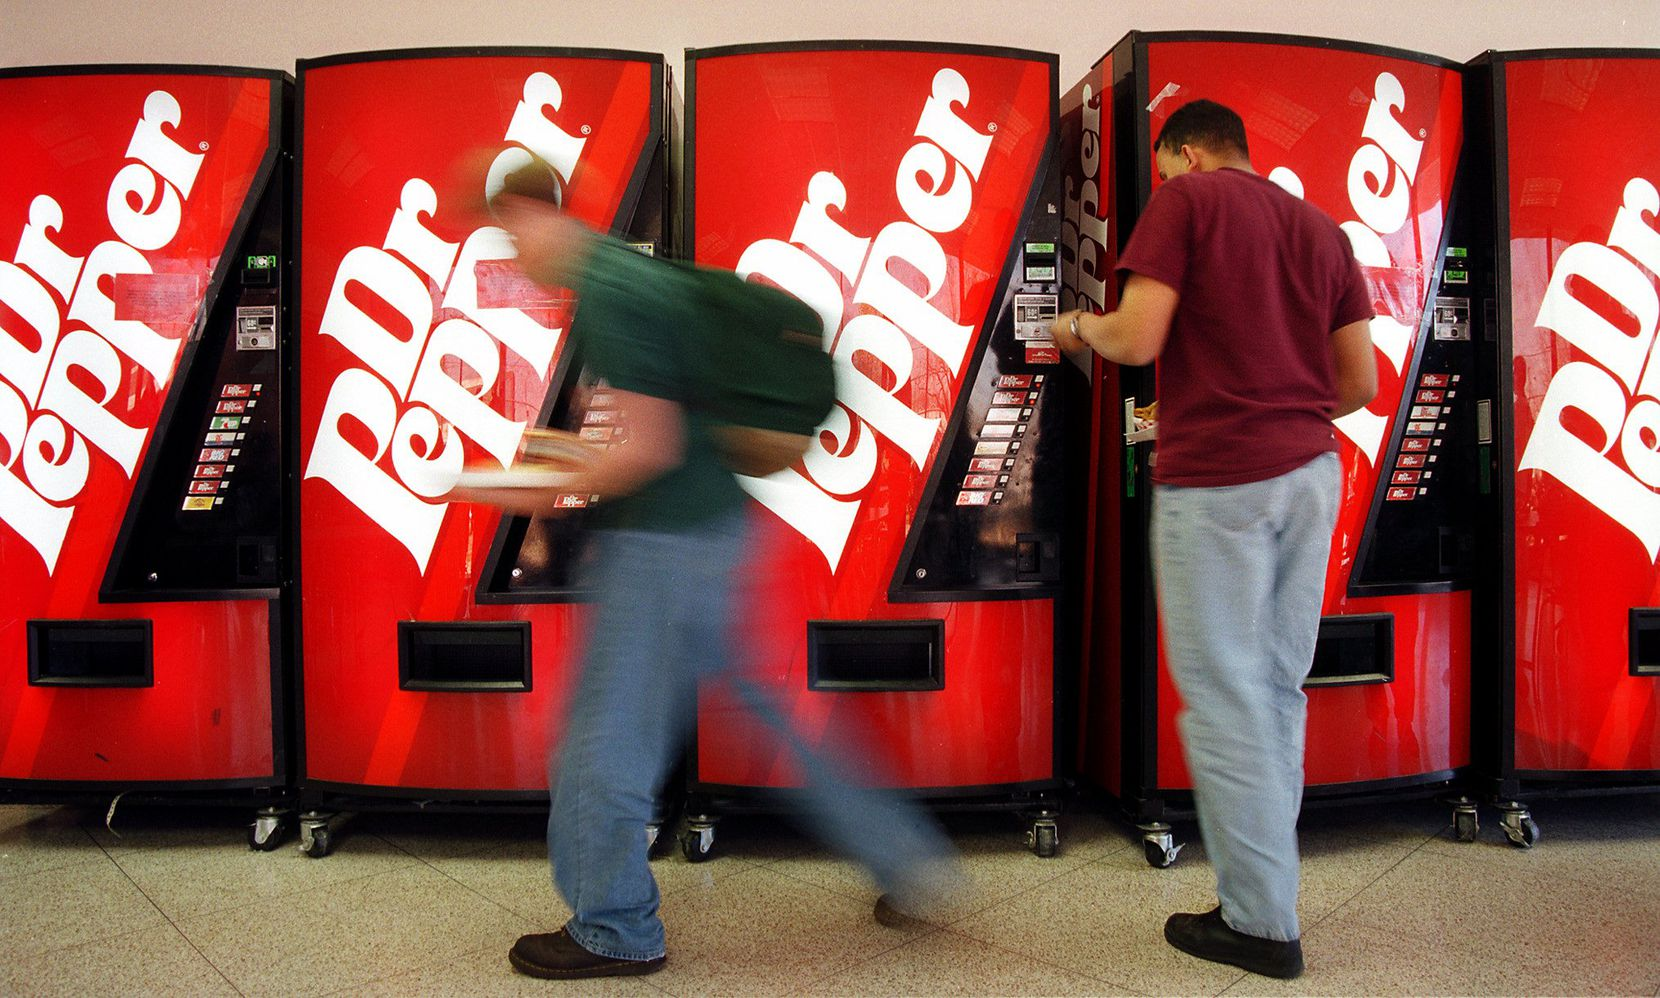 Arlington High students drop their money in the row of Dr. Pepper soft drink vending machines during the lunch hour, published Feb. 28, 1998.